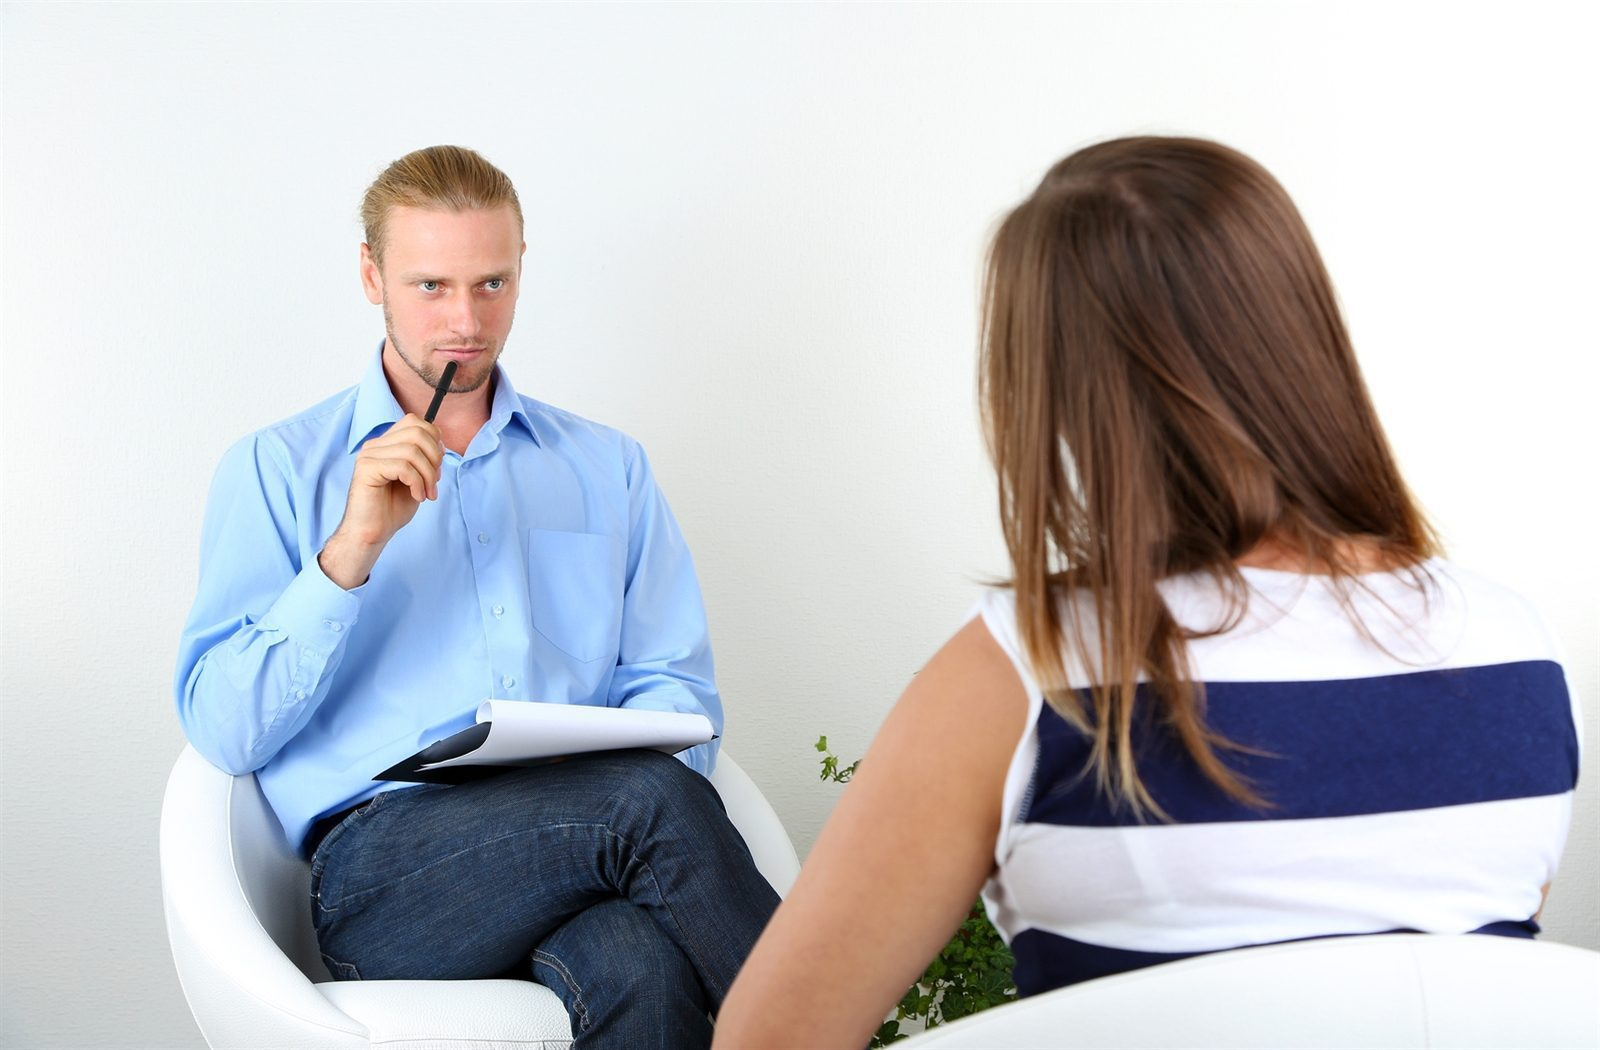 counselling skills 1 essay Get access to counselling skills essays only from anti essays listed results 1 - 30 get studying today and get the grades you want only at.